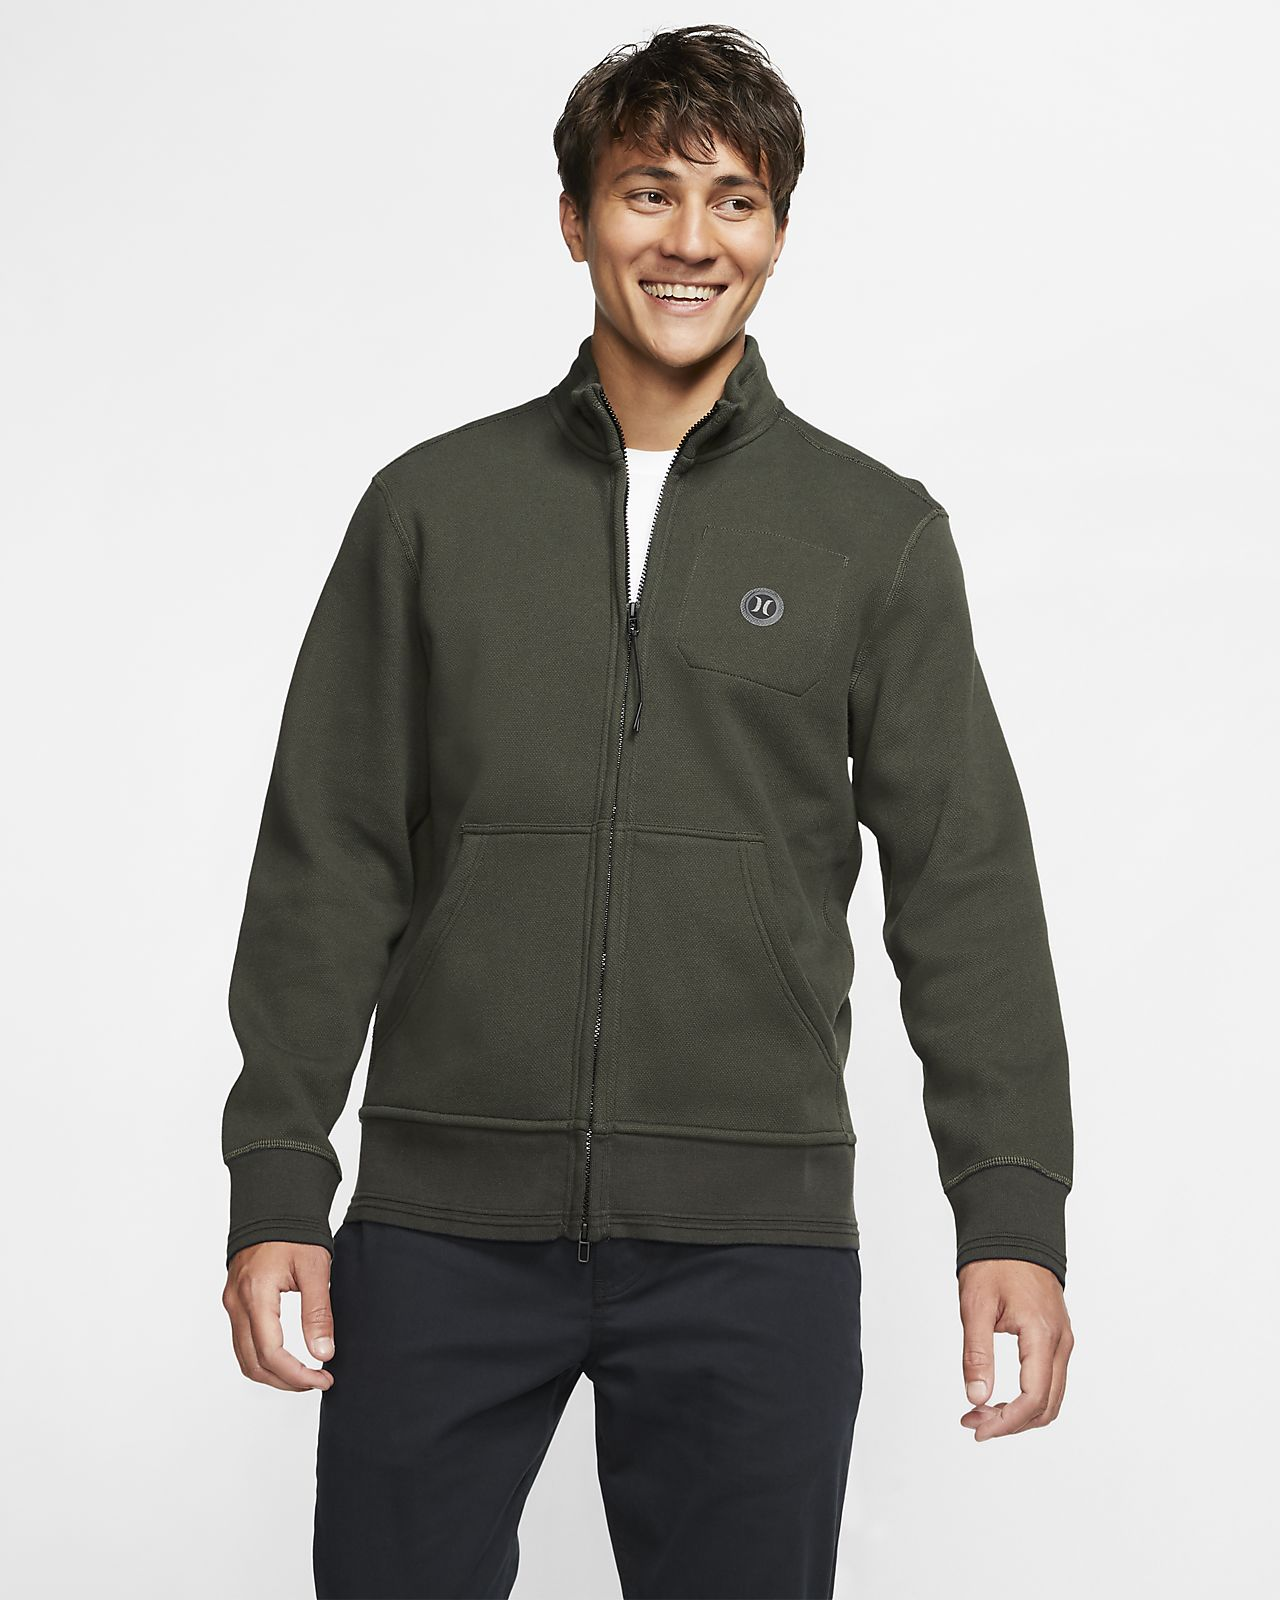 Hurley Endure Therma Men's Track Fleece